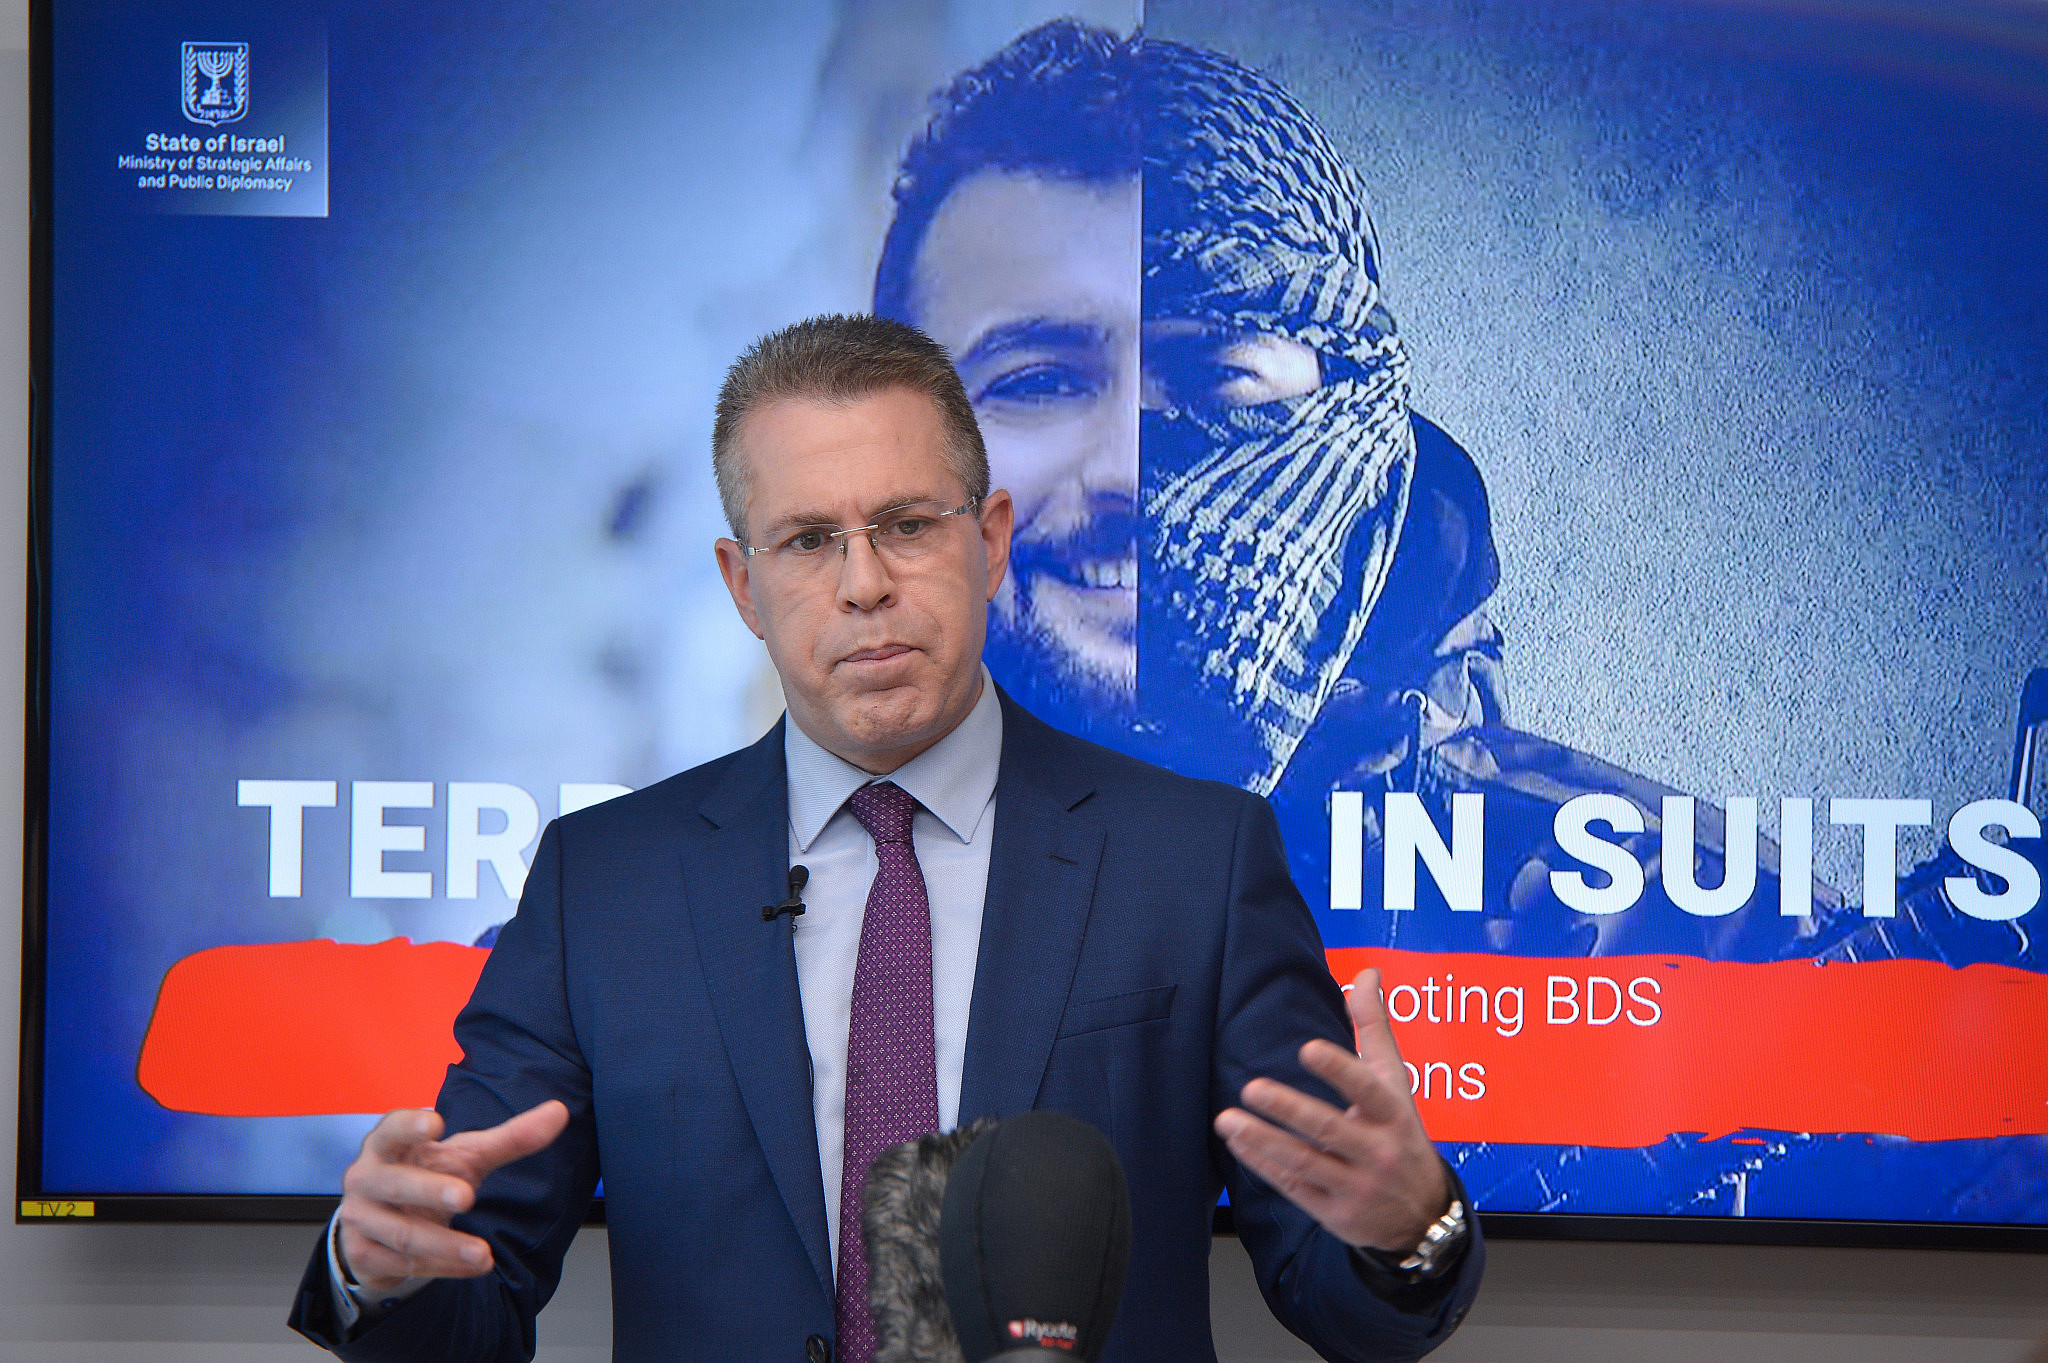 Public Security Minister Gilad Erdan speaks during a press conference for the foreign media, in Bnei Brak, Feb. 3, 2019. (Flash90)